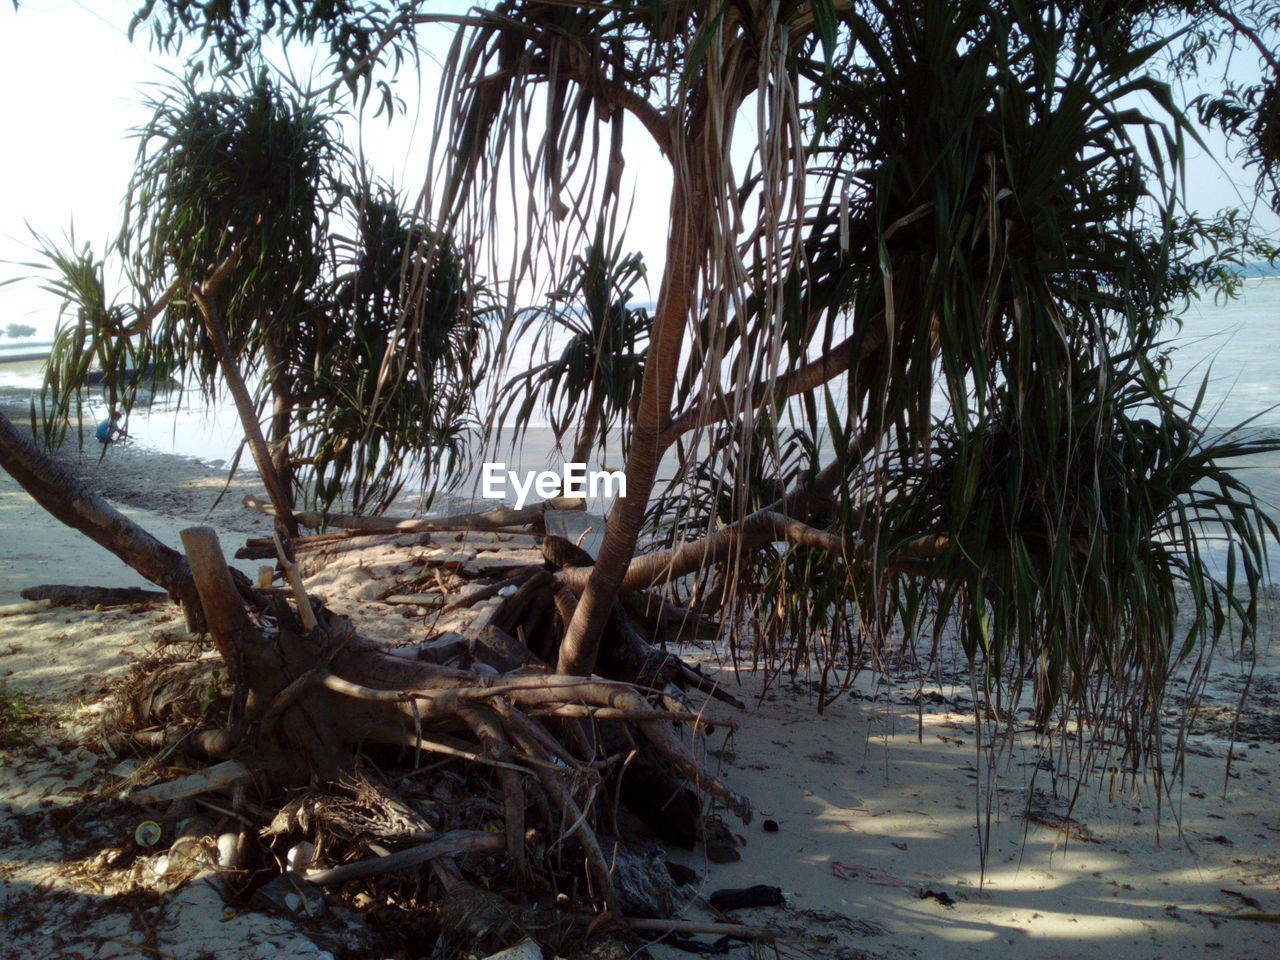 tree, tranquility, nature, tranquil scene, no people, water, outdoors, scenics, beauty in nature, beach, sand, day, sea, landscape, sky